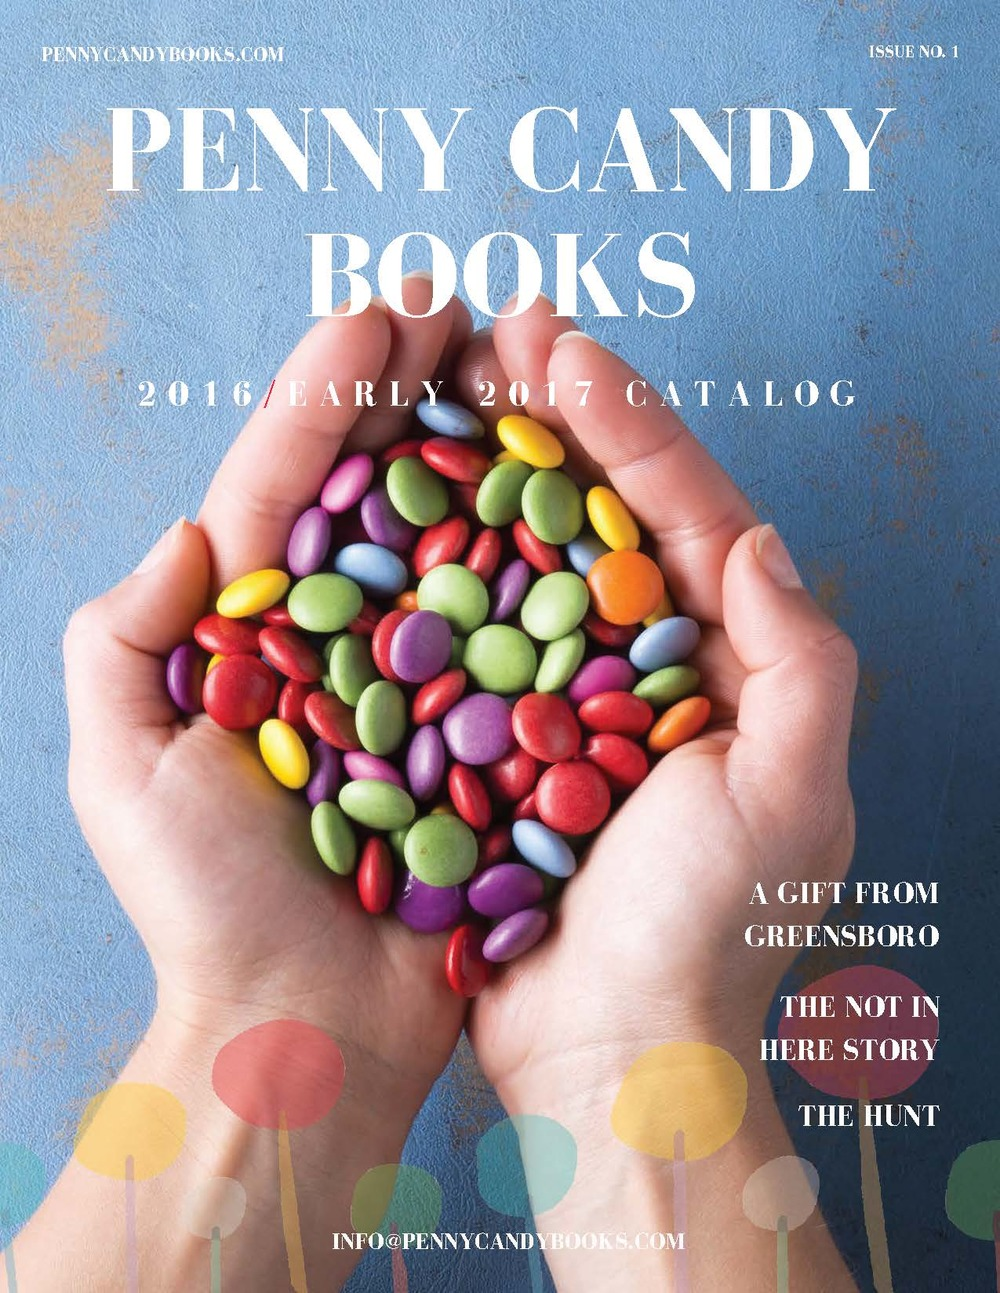 Penny Candy Books 2016 Catalog